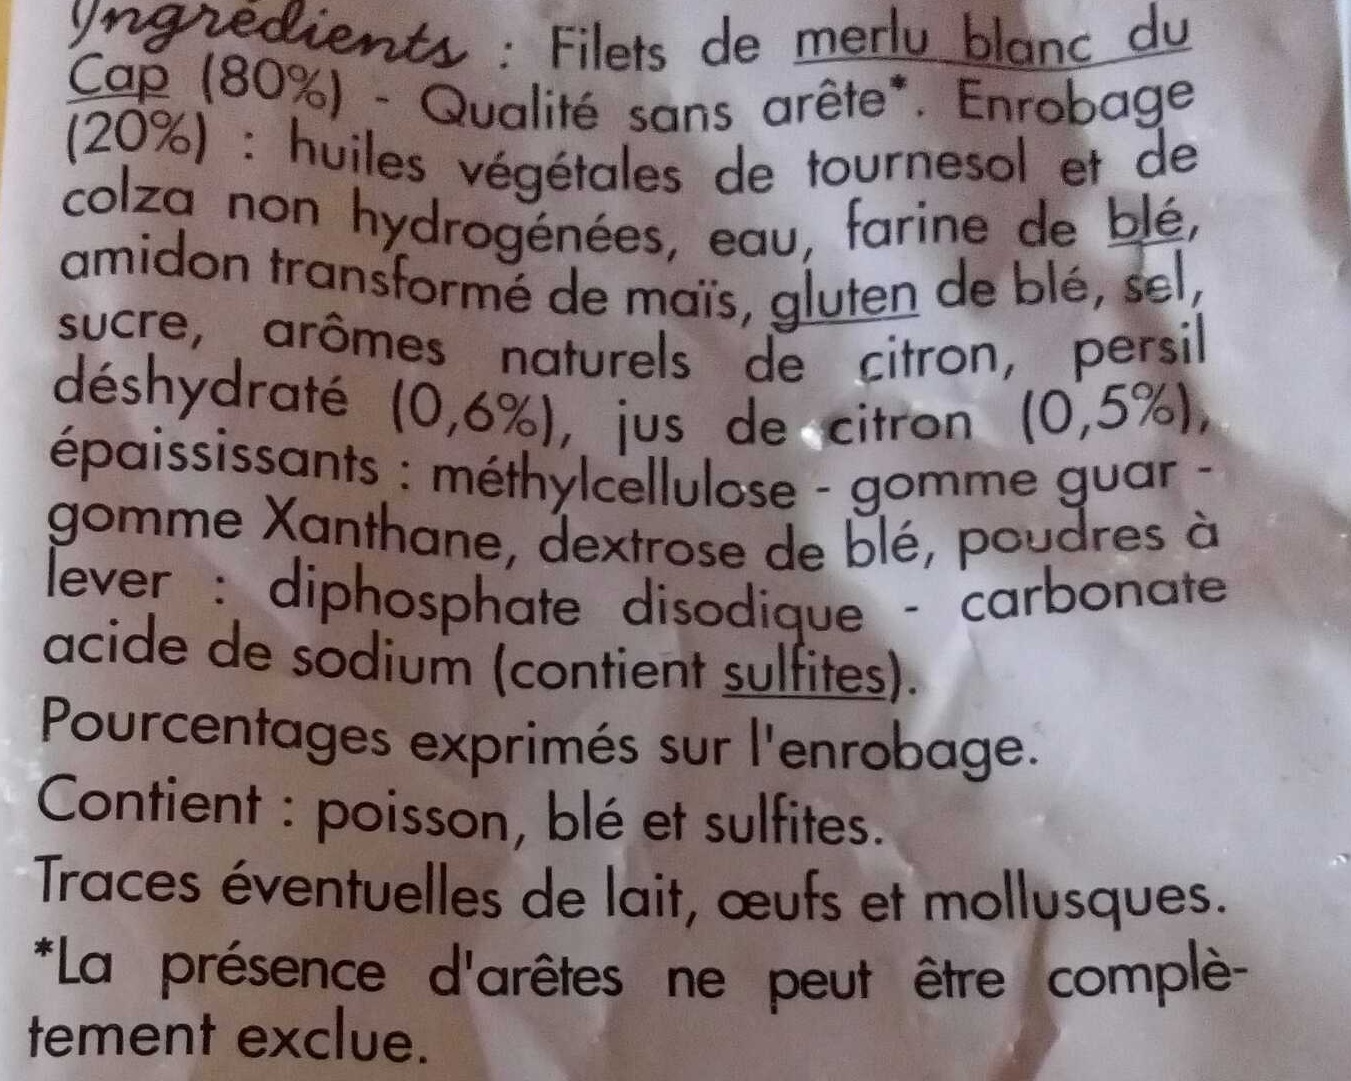 Plein filet de merlu blanc du Cap meunière - Ingredients